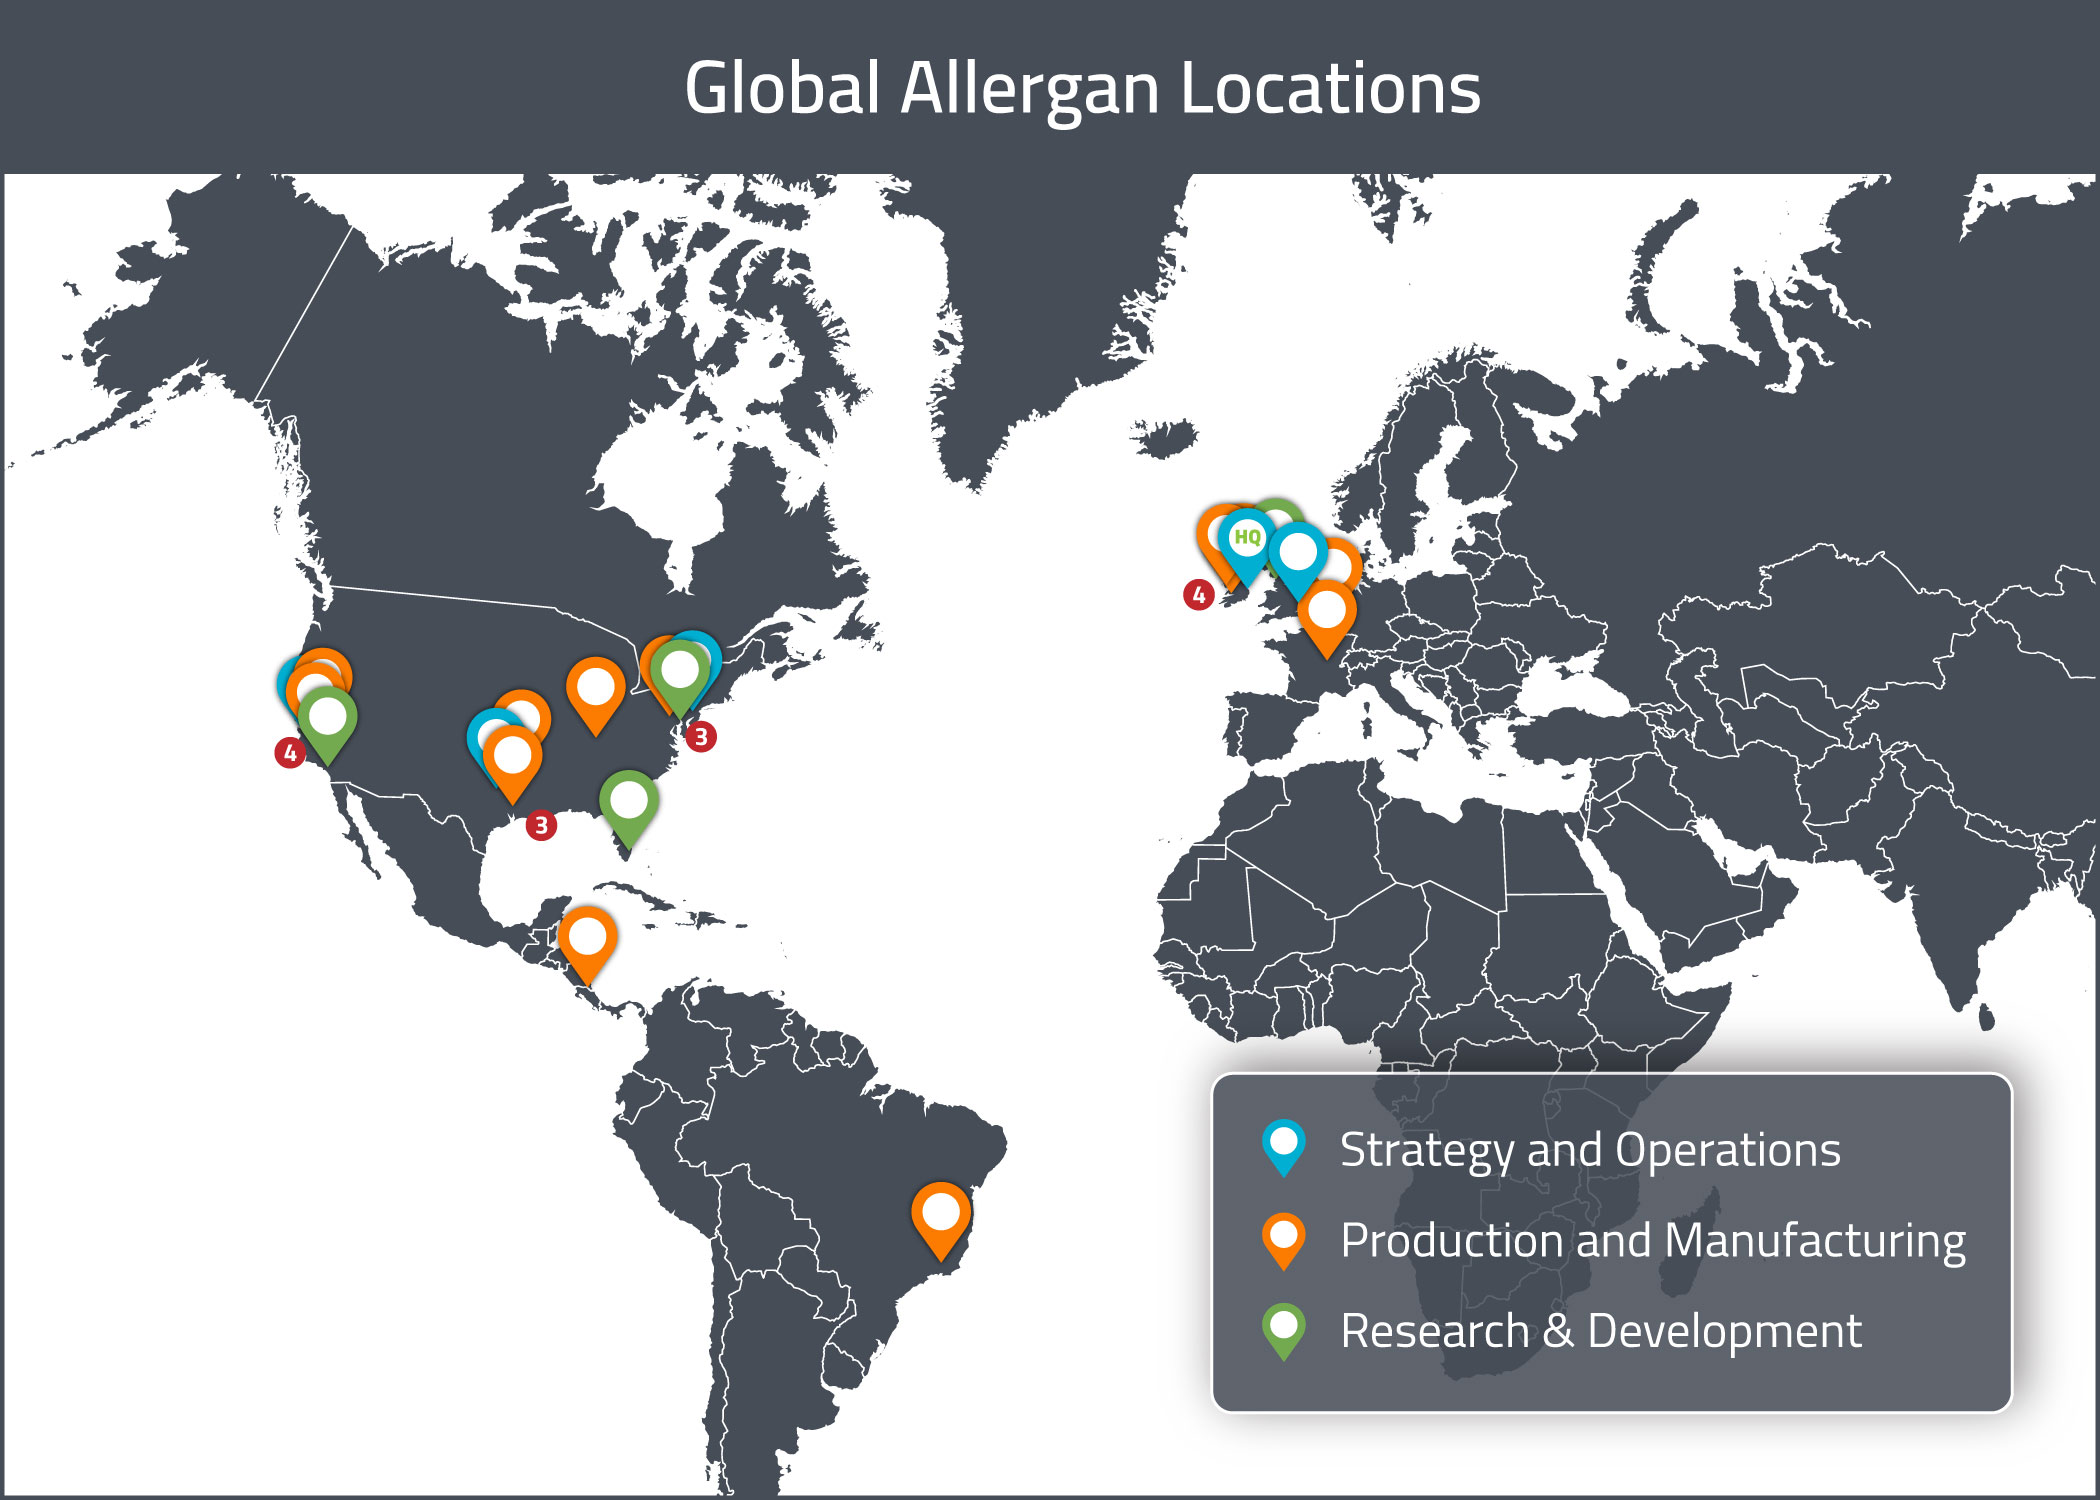 A visual map of Allergan's global offices and locations